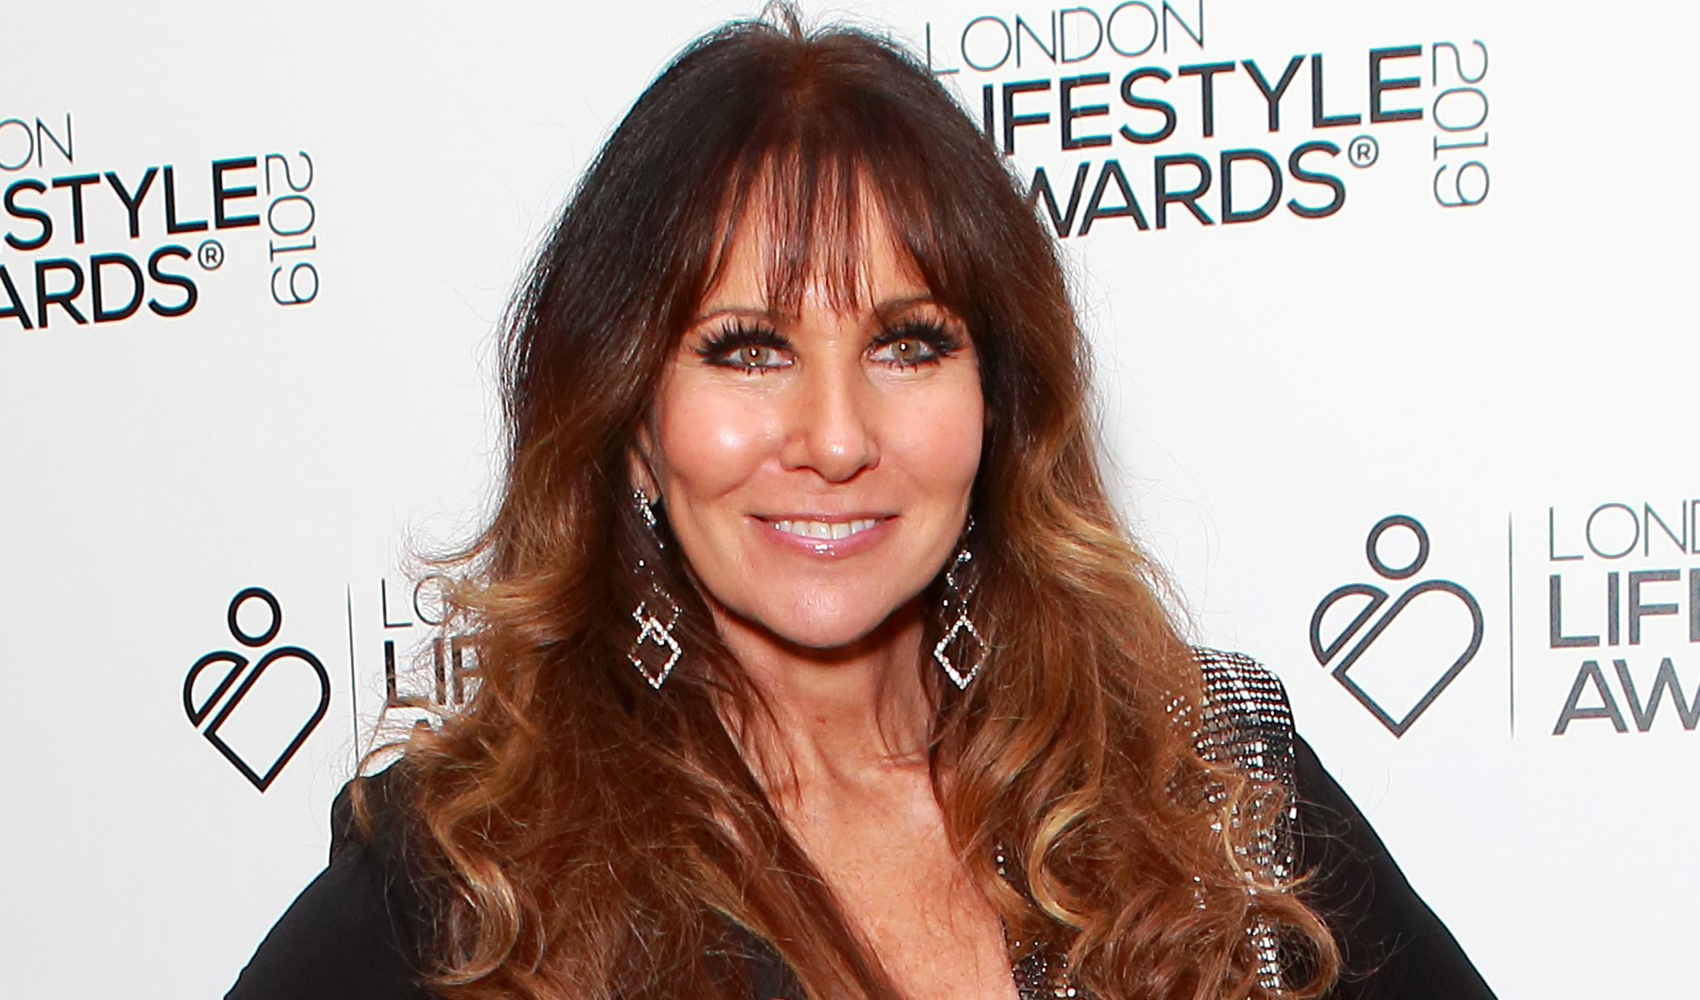 Linda Lusardi shares update with fans after coronavirus battle